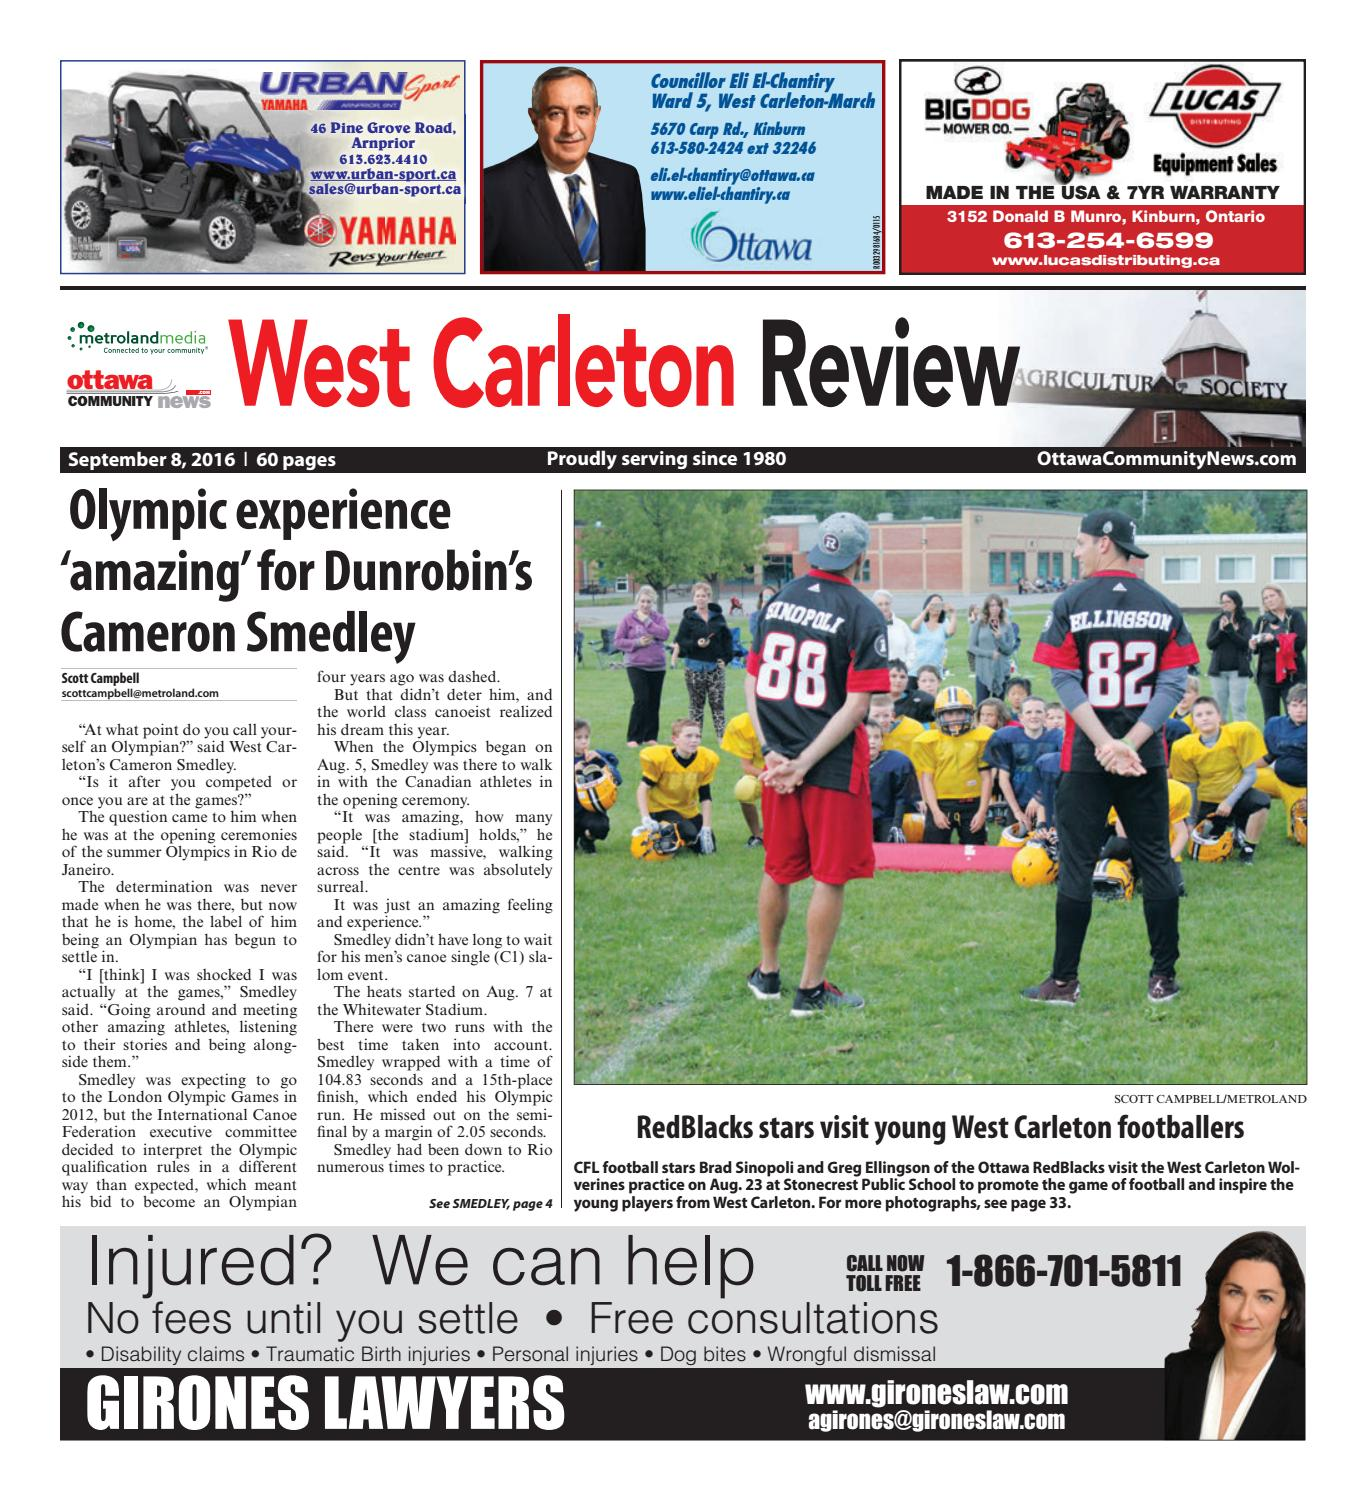 527ca59f4b Westcarleton090816 by Metroland East - West Carleton Review - issuu